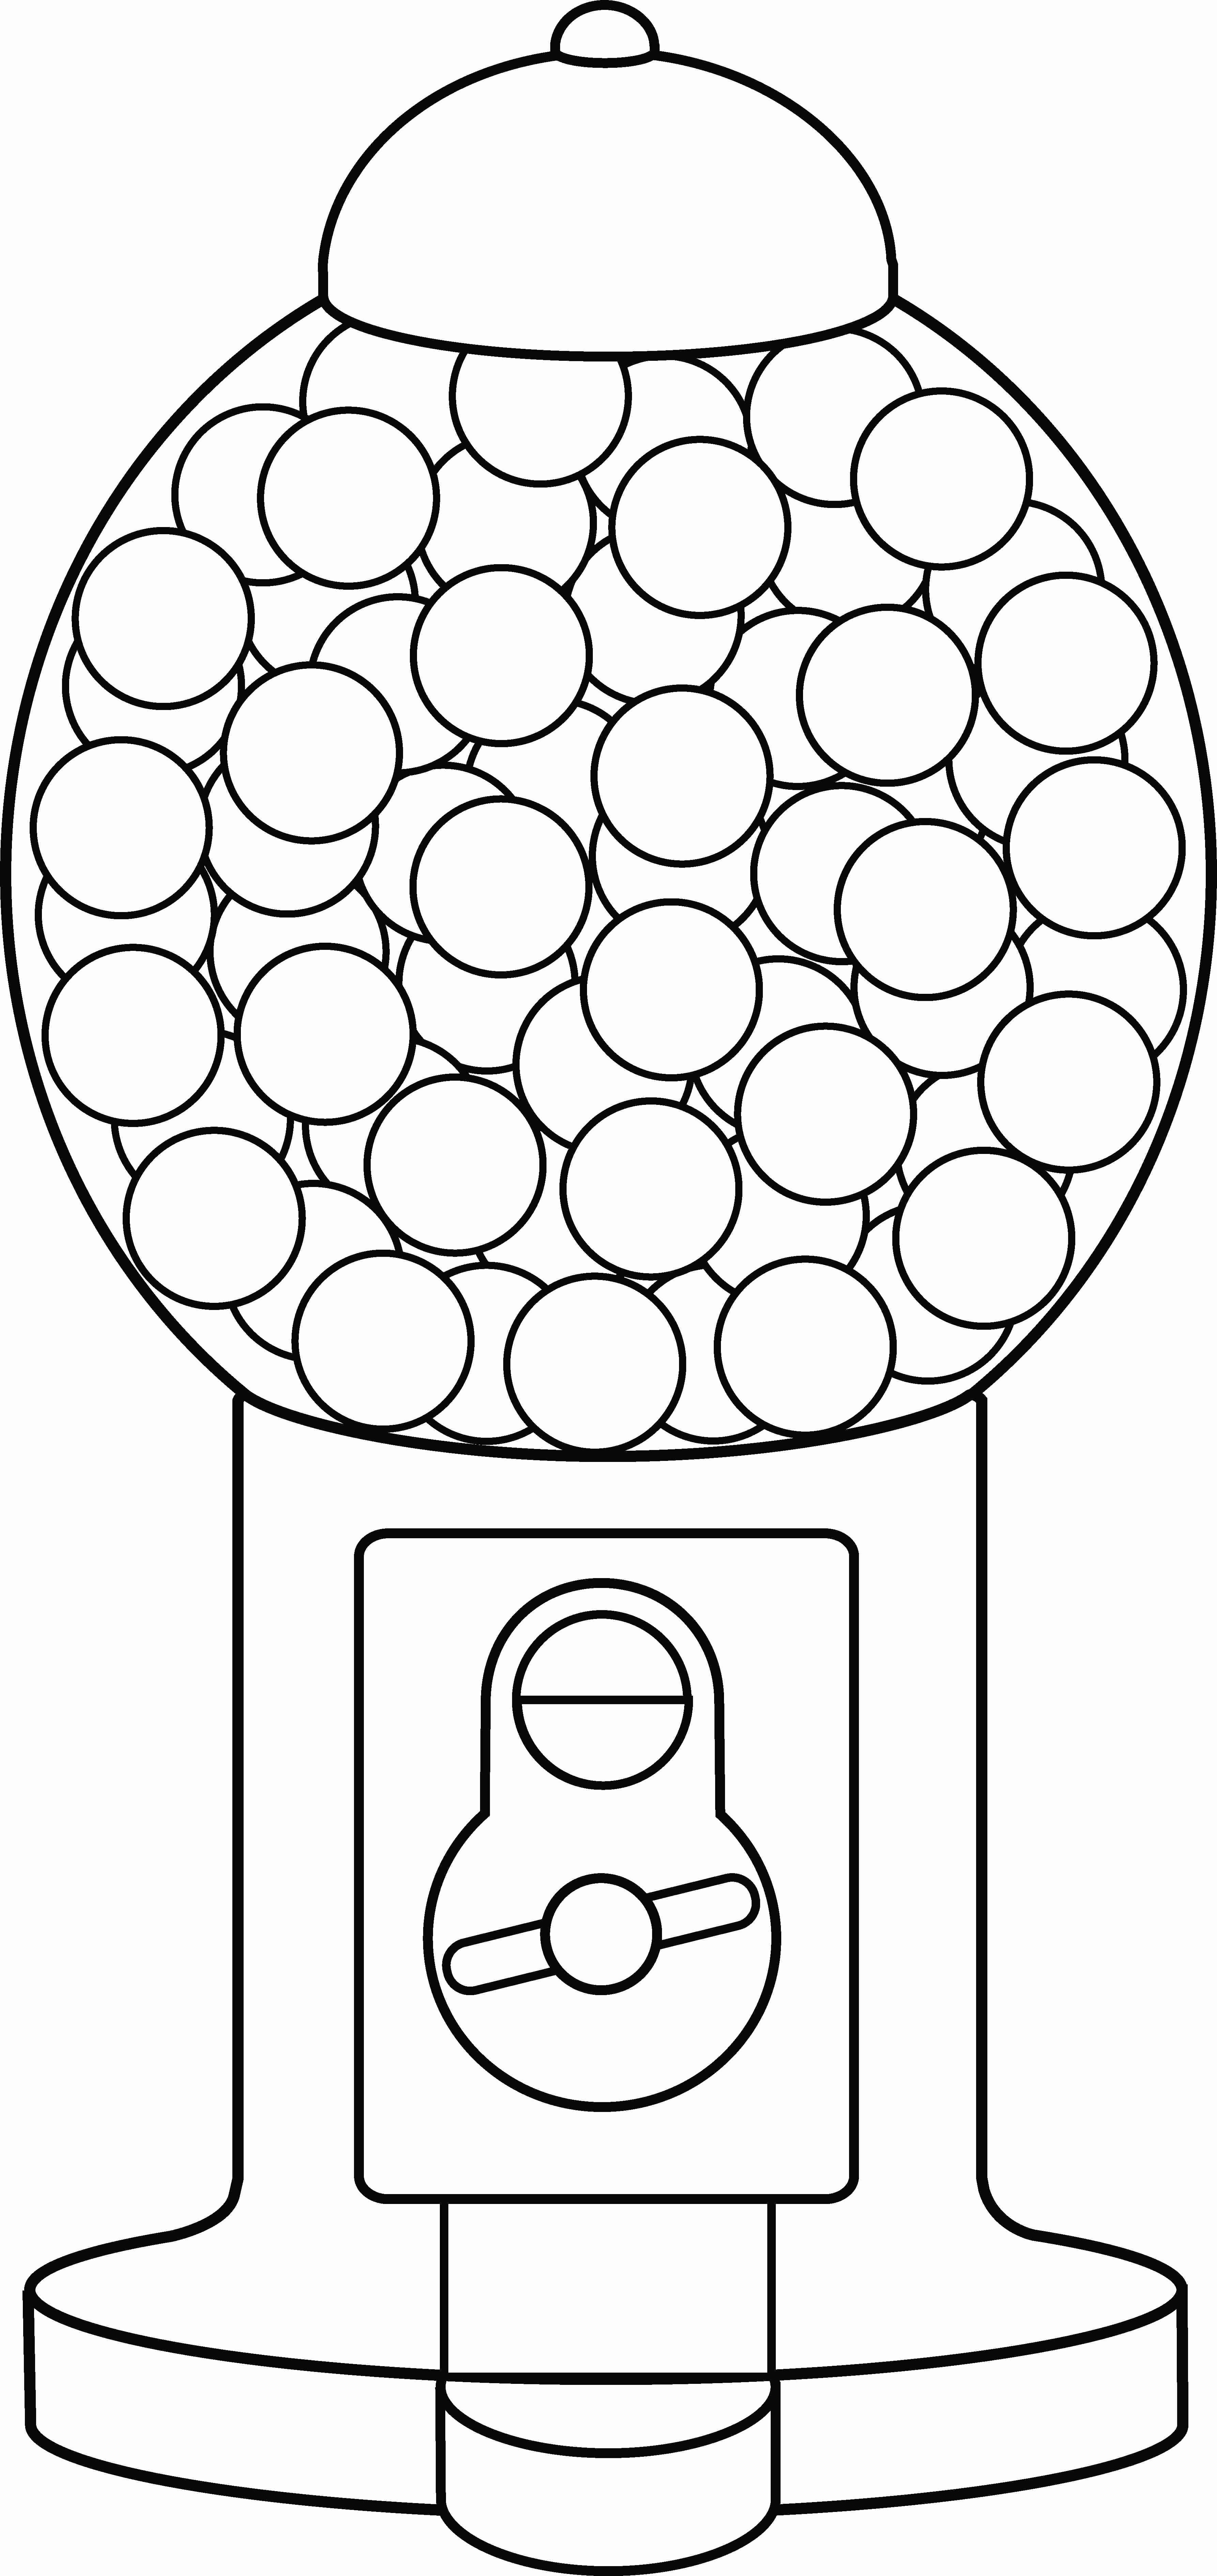 Gumball machine clipart bubble gum. Coloring page free clip